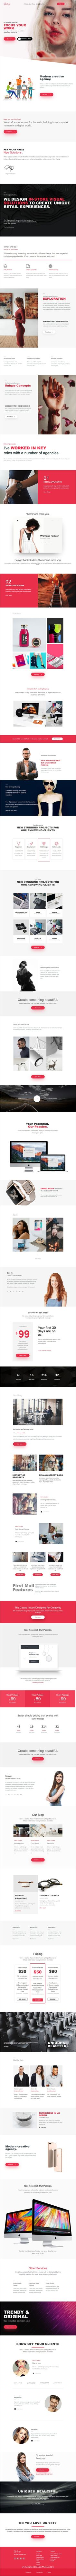 Belluga is a clean and modern design responsive #email #newsletter #template for viral #marketing with online builder and 60+ modules to download & live preview click on image or Visit  #emailmarketing